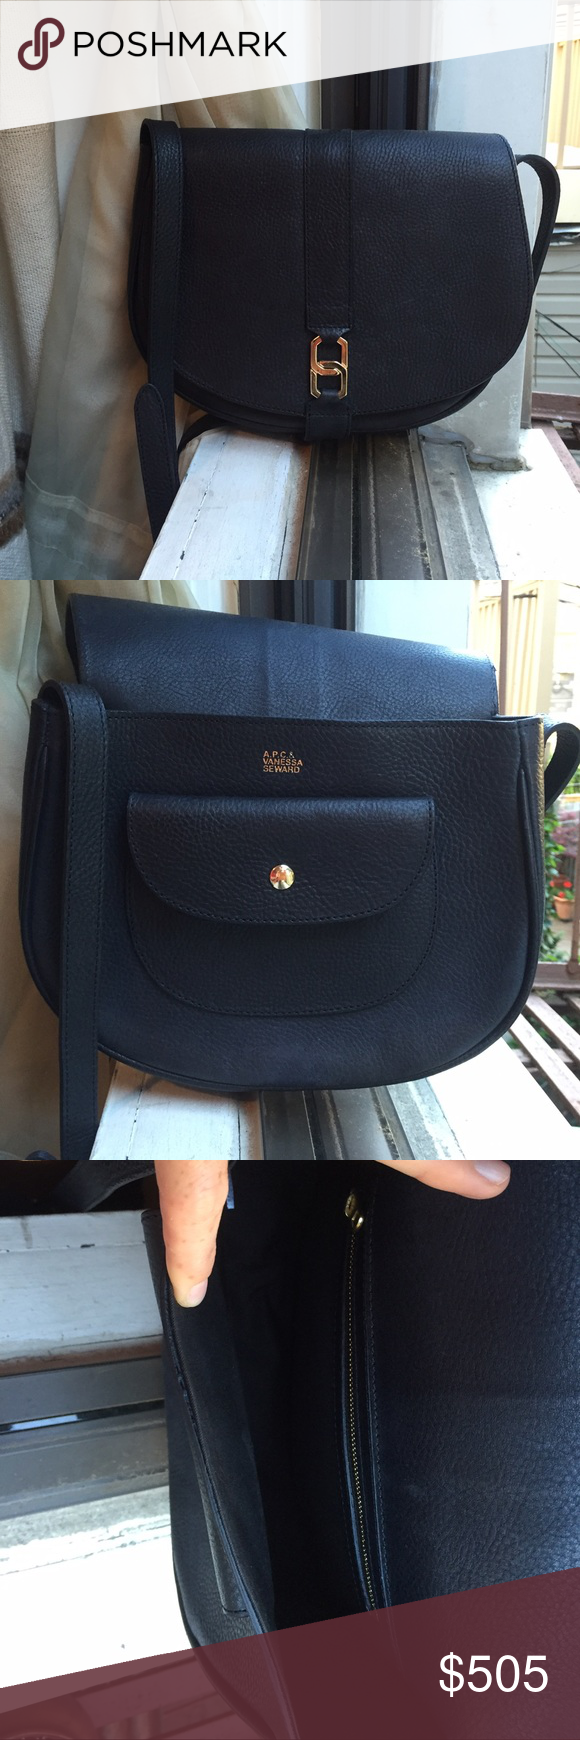 51a71709b3 A.P.C.   Vanessa Seward Navy Crossbody Saddle Bag NWOT fantastic condition!  All navy leather and hold accent hardware. Comment with any questions!